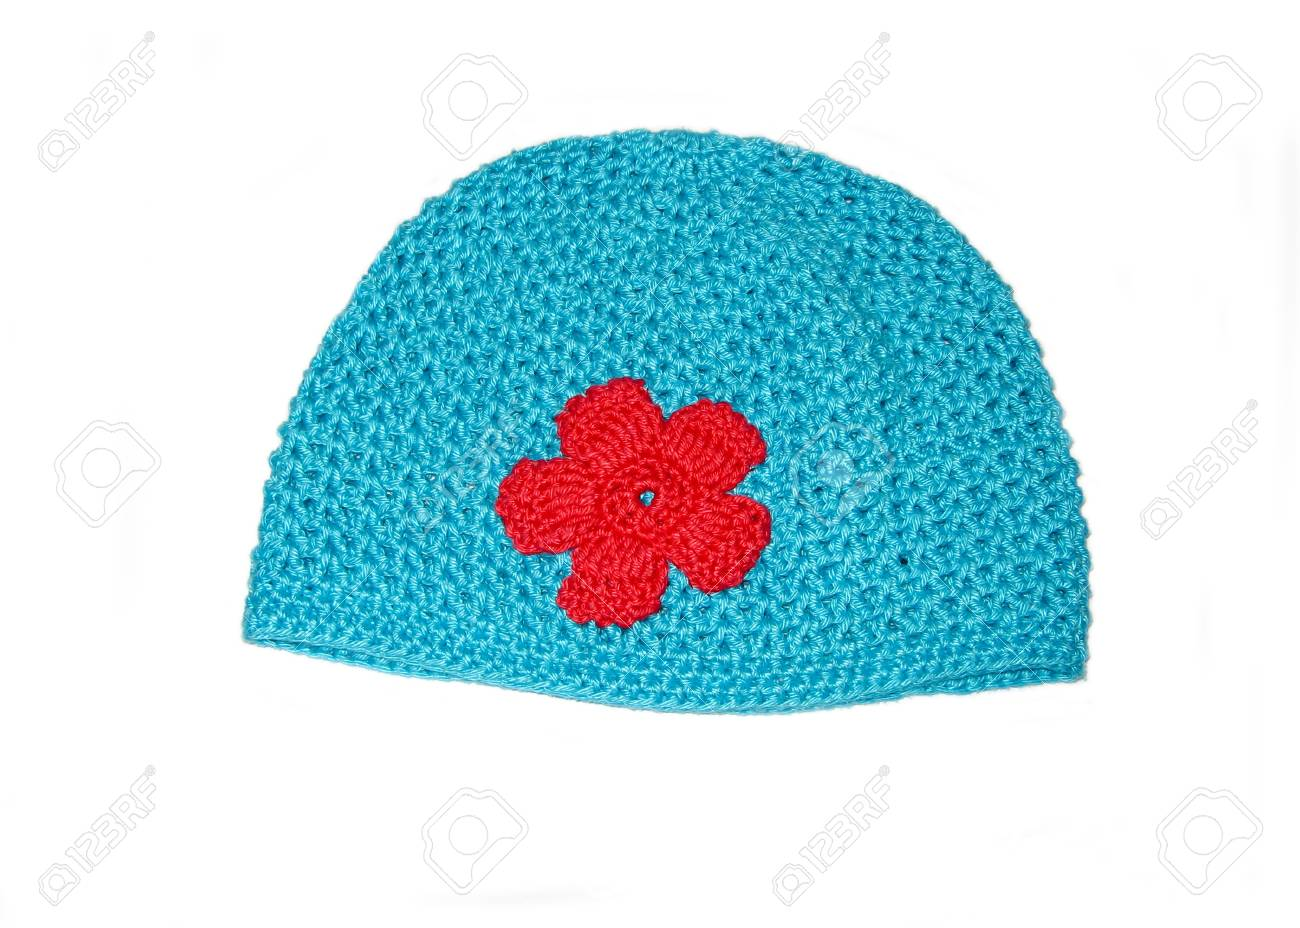 5b99d60d Crochet Hat Stock Photo, Picture And Royalty Free Image. Image 17350169.